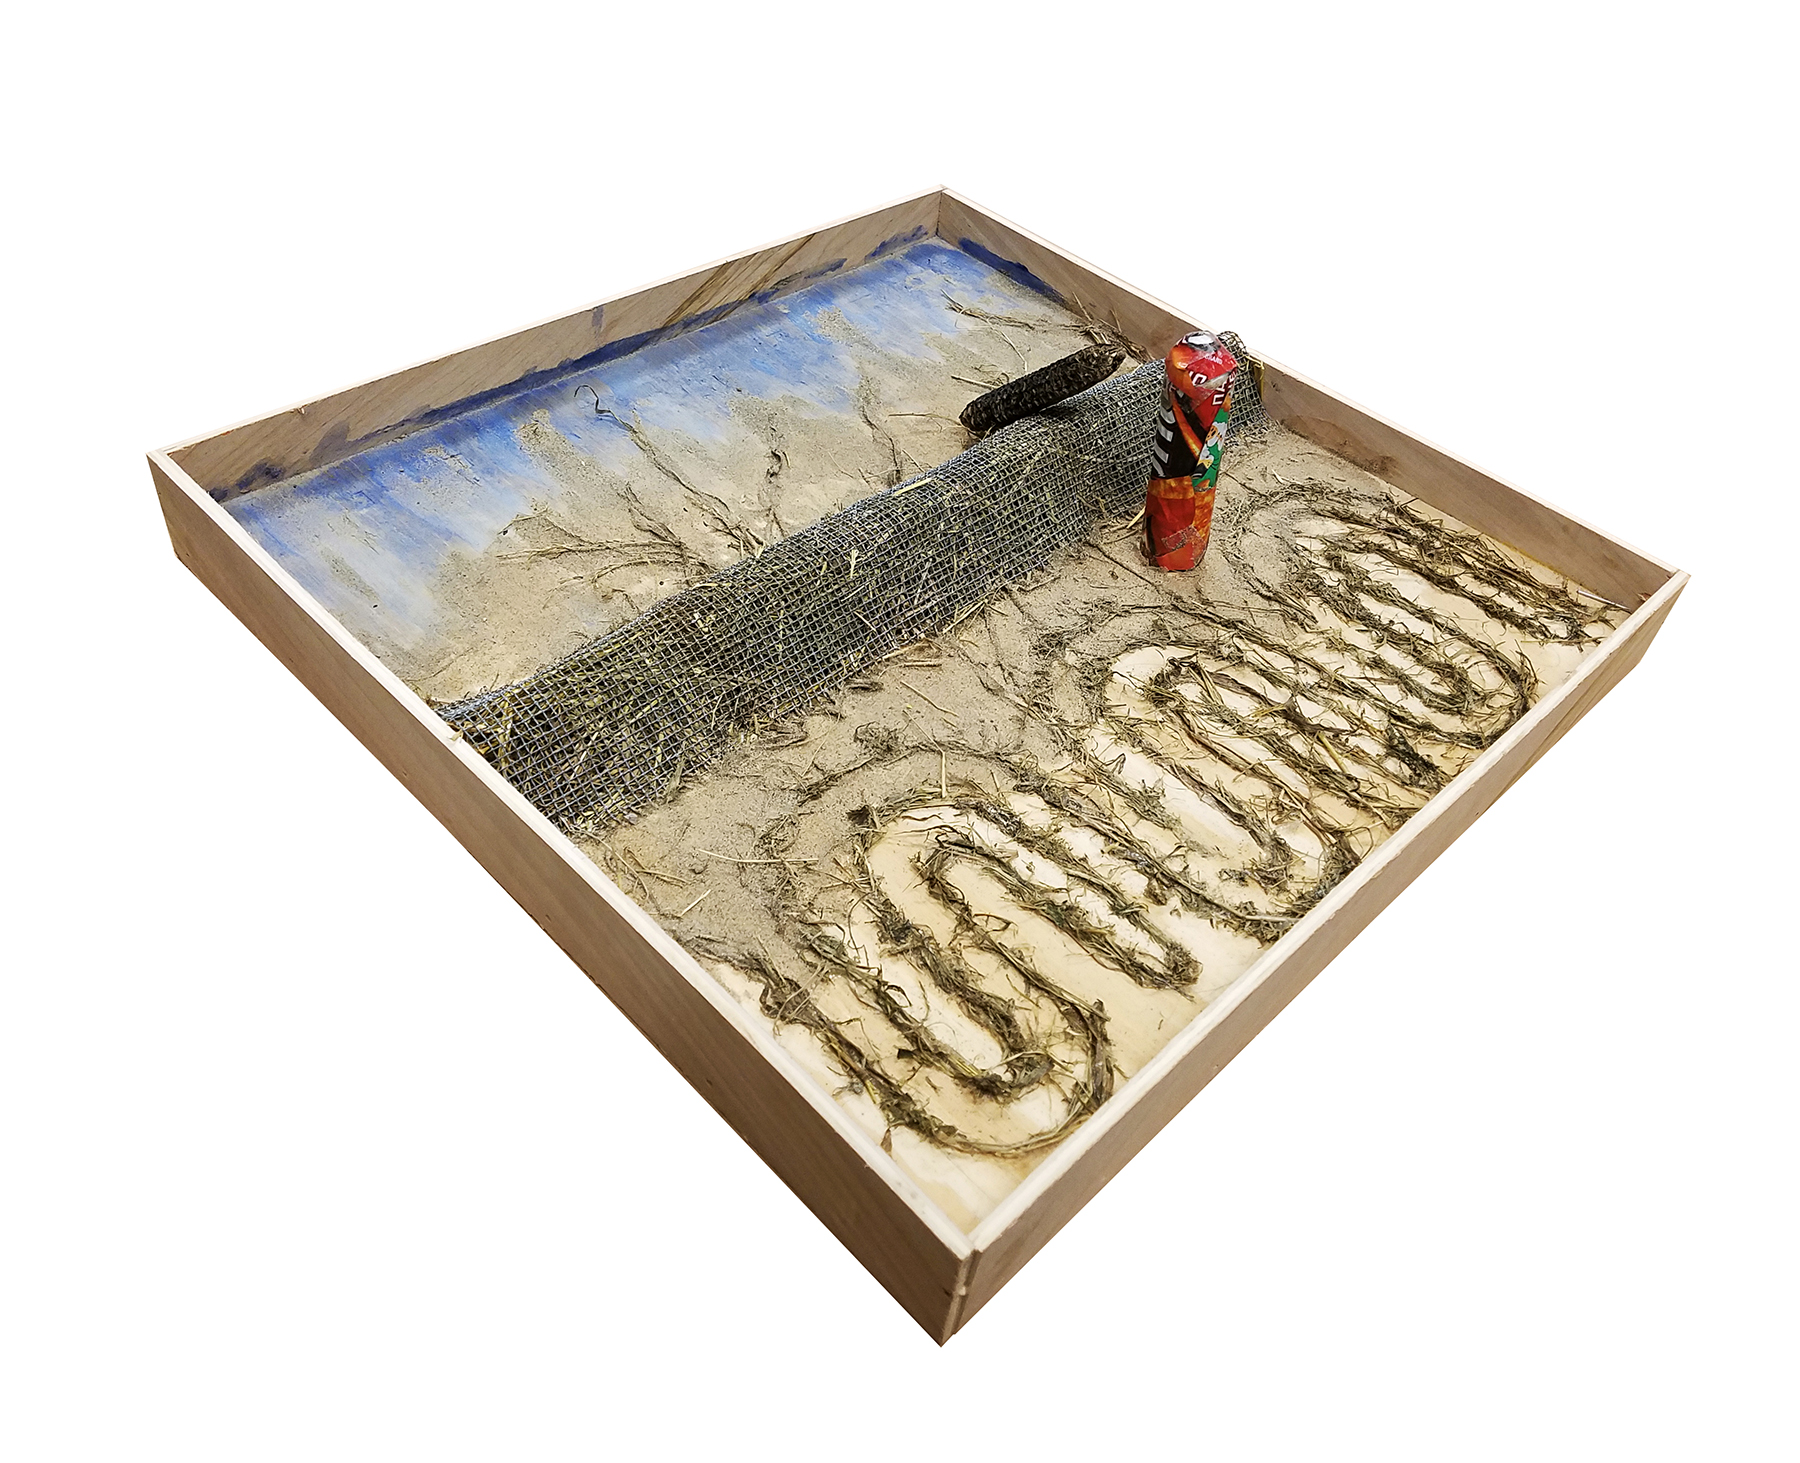 Natia Kapanadze, wood, wheat straw, found mesh, Doritos package, corn, watercolor. Drift Model shows how levees keep river water out of floodplain industrial cropland, but leach nutrients into the Mississippi River.